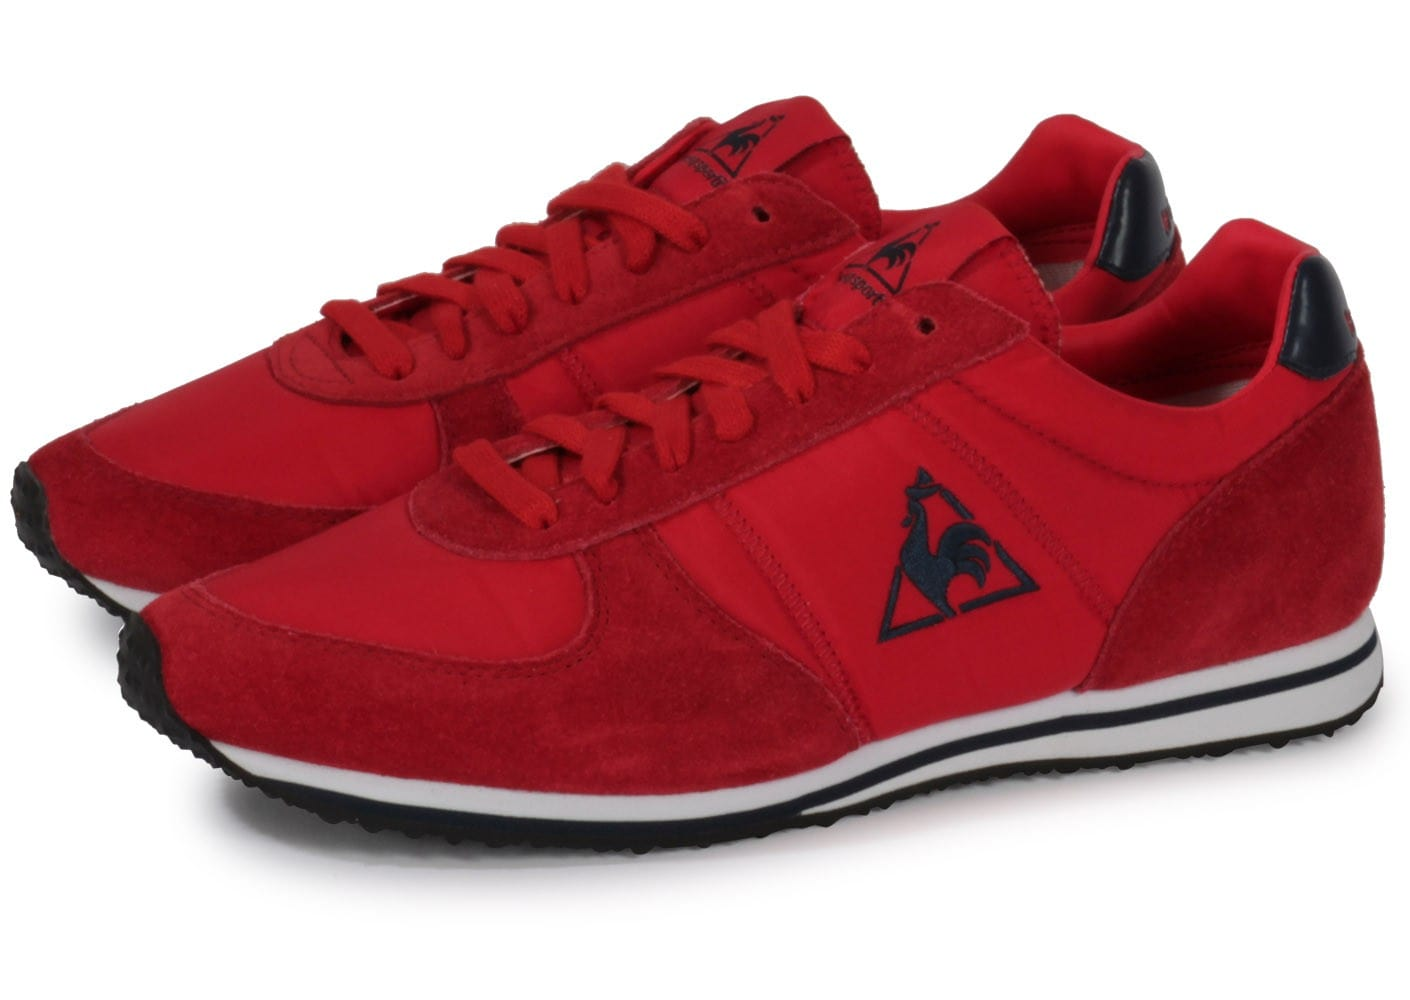 le coq sportif bolivar rouge chaussures chaussures chausport. Black Bedroom Furniture Sets. Home Design Ideas